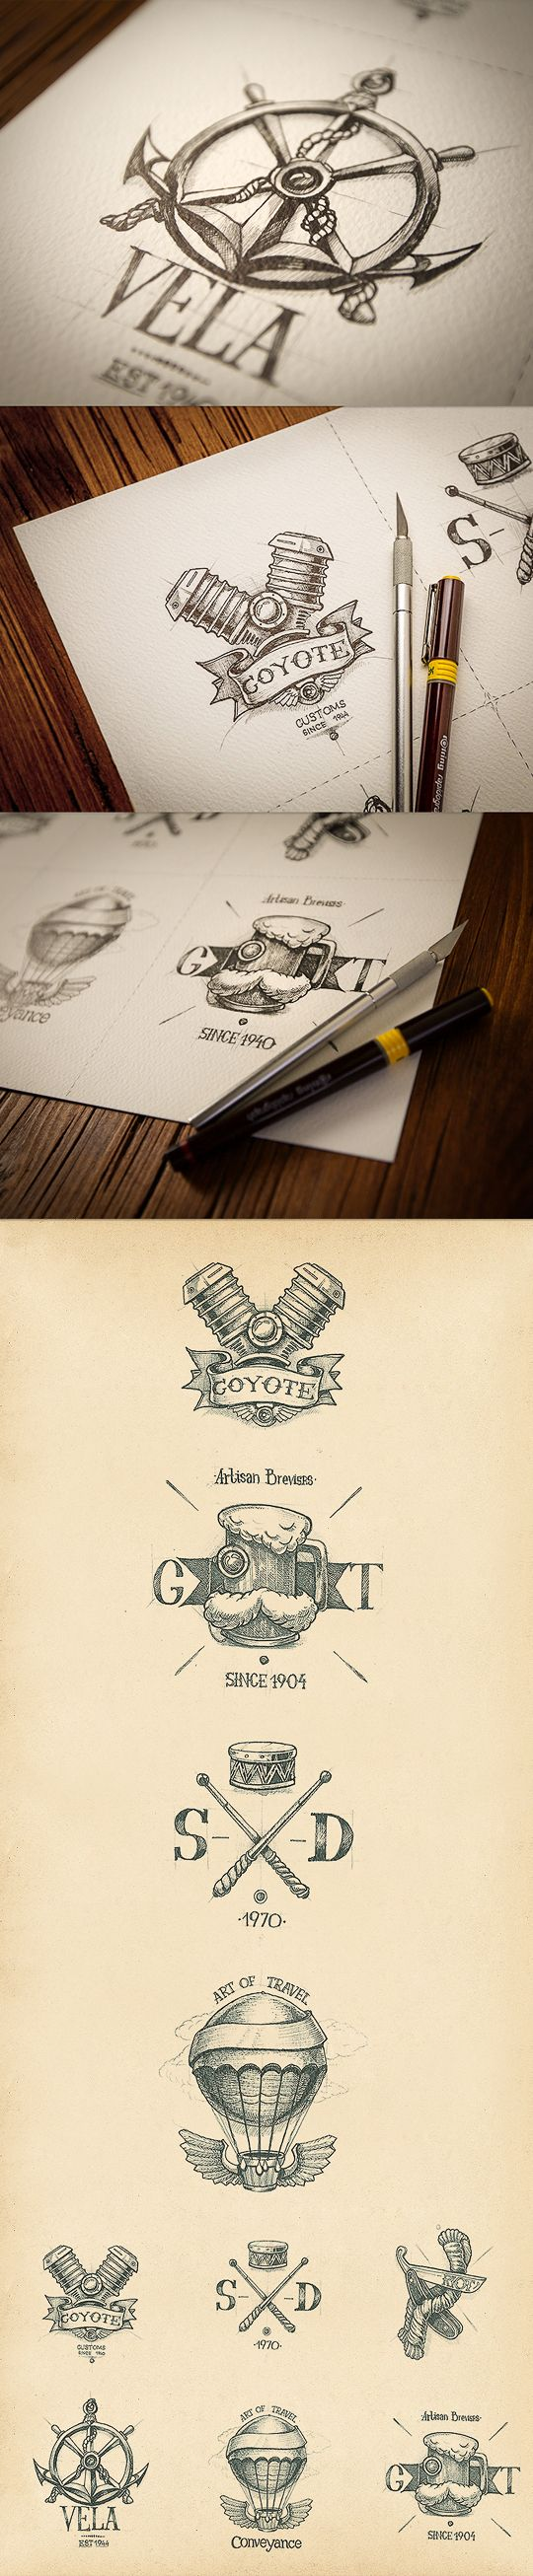 Logotypes collection | 2012-2013 by Mike , via Behance #design